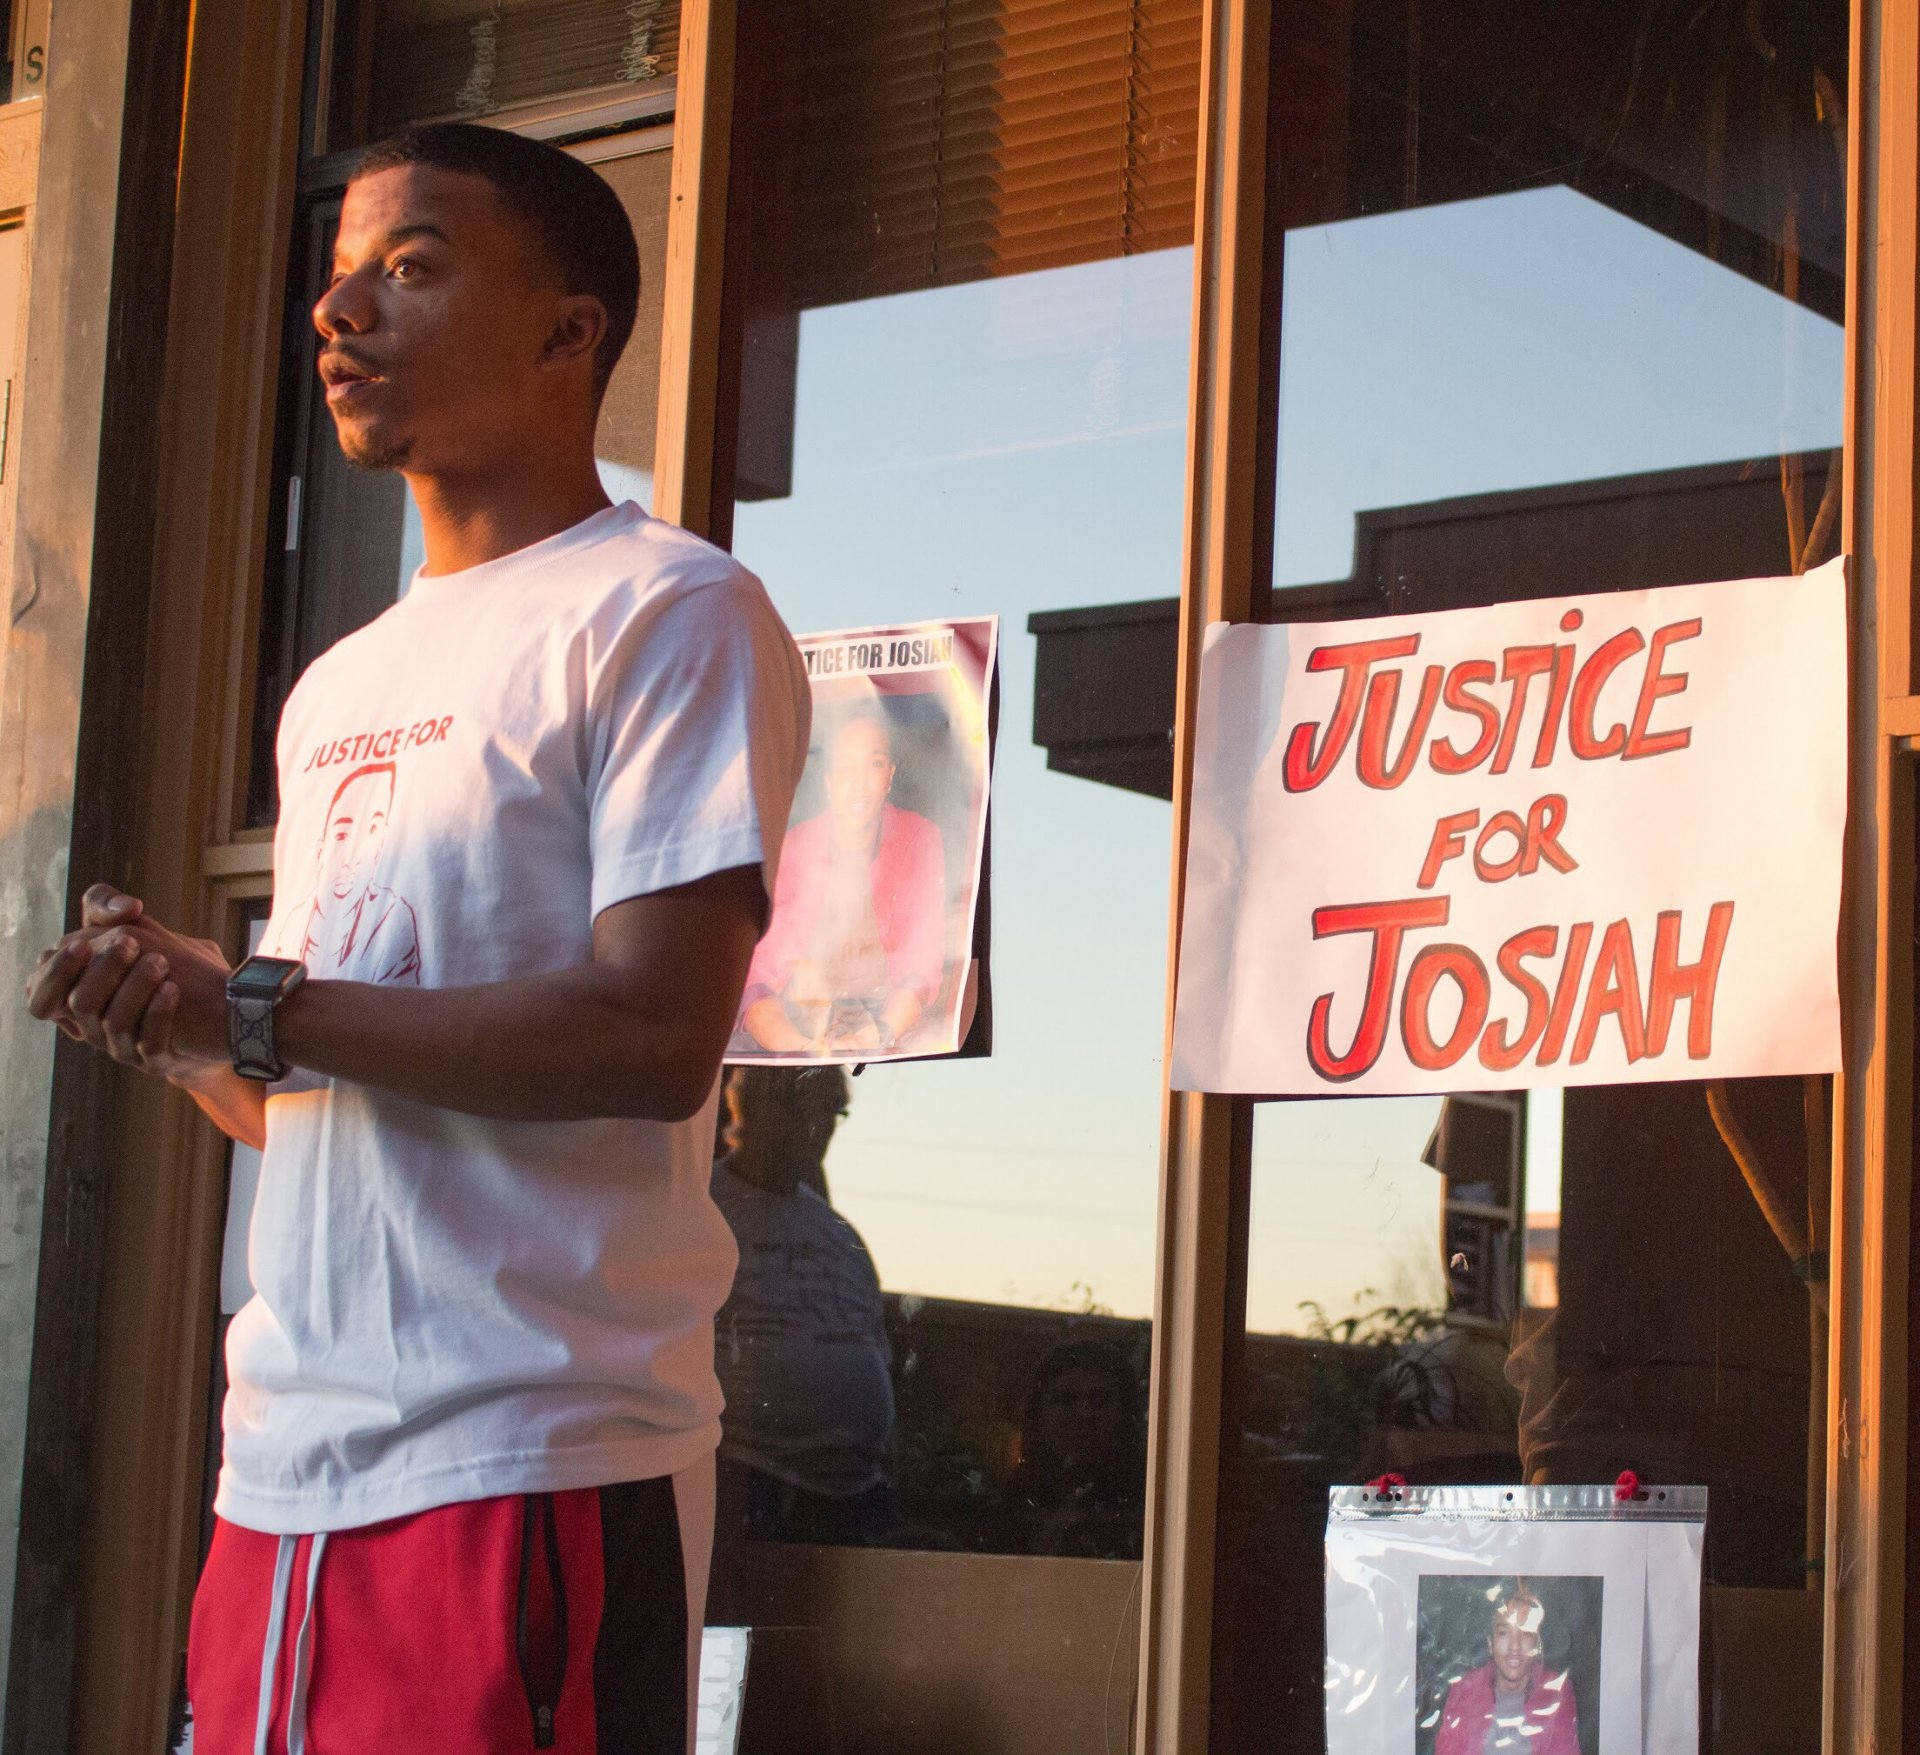 Karim Muhammed, a friend of David Josiah Lawson, discusses safety and racism in front of Arcata City Hall during Justice for Josiah's 18th vigil on Oct. 15, 2018. | Photo by Tony Wallin